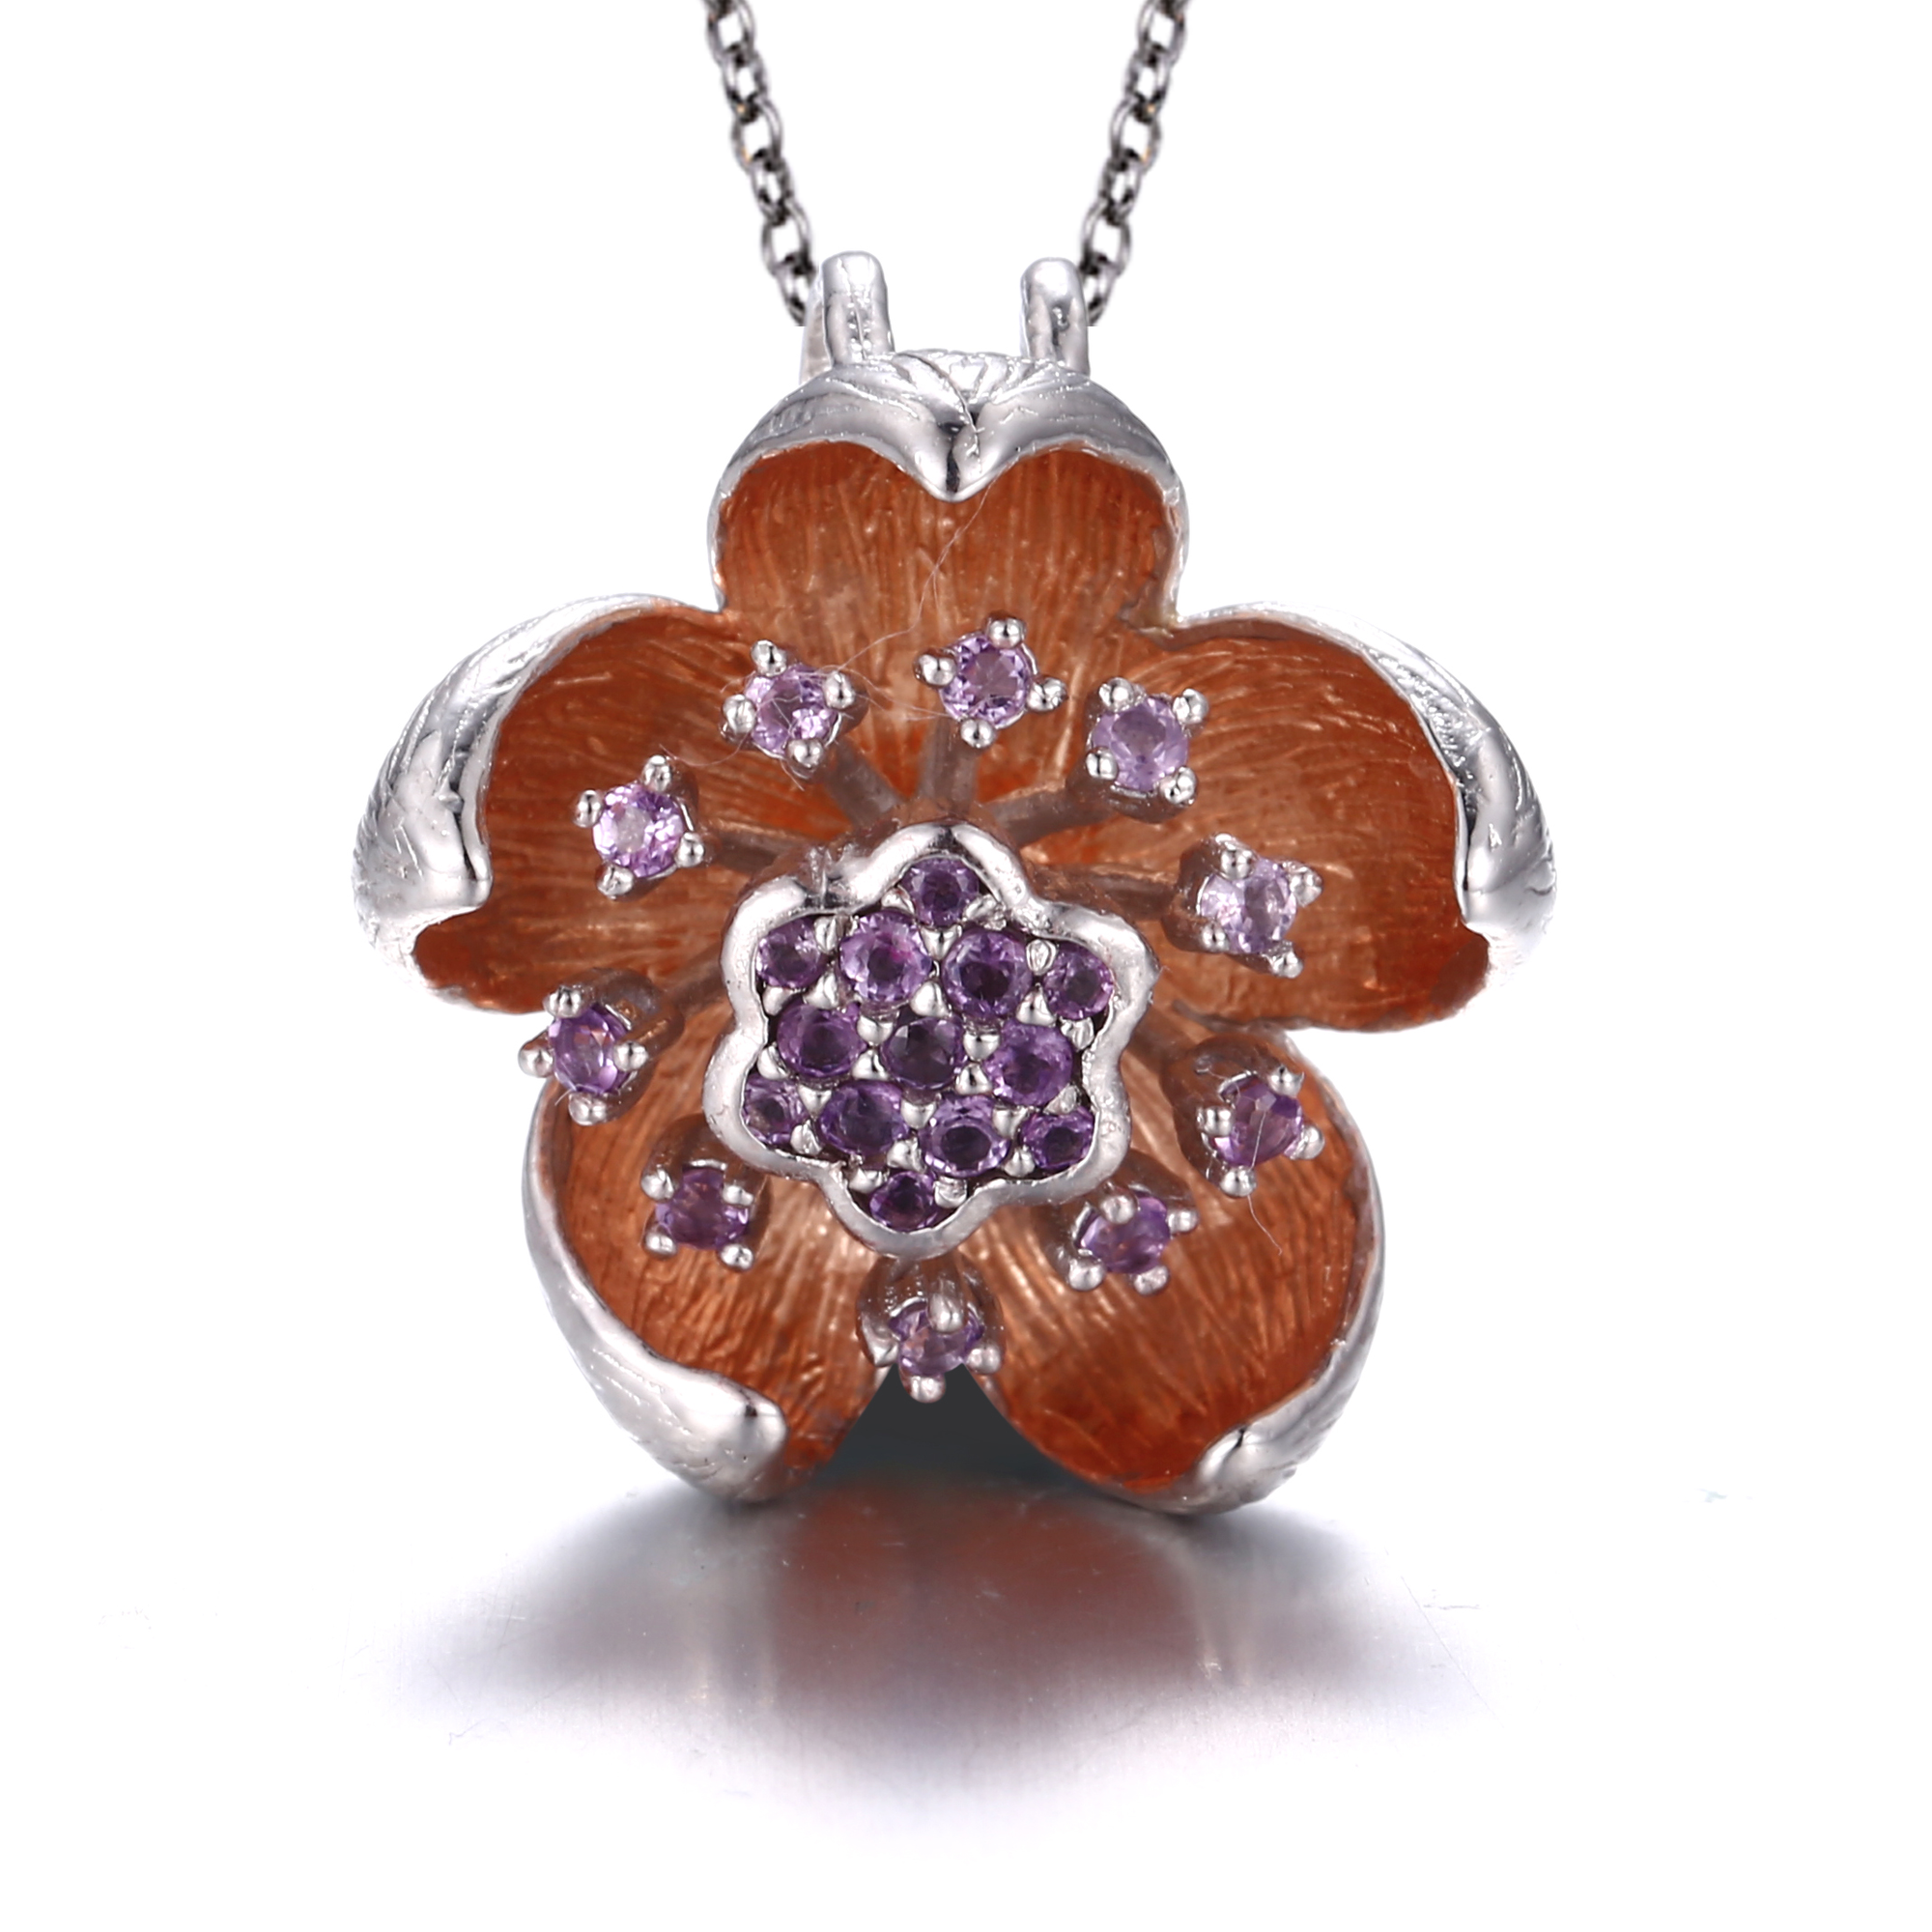 Floral Amethyst Necklace - penelope-it.com